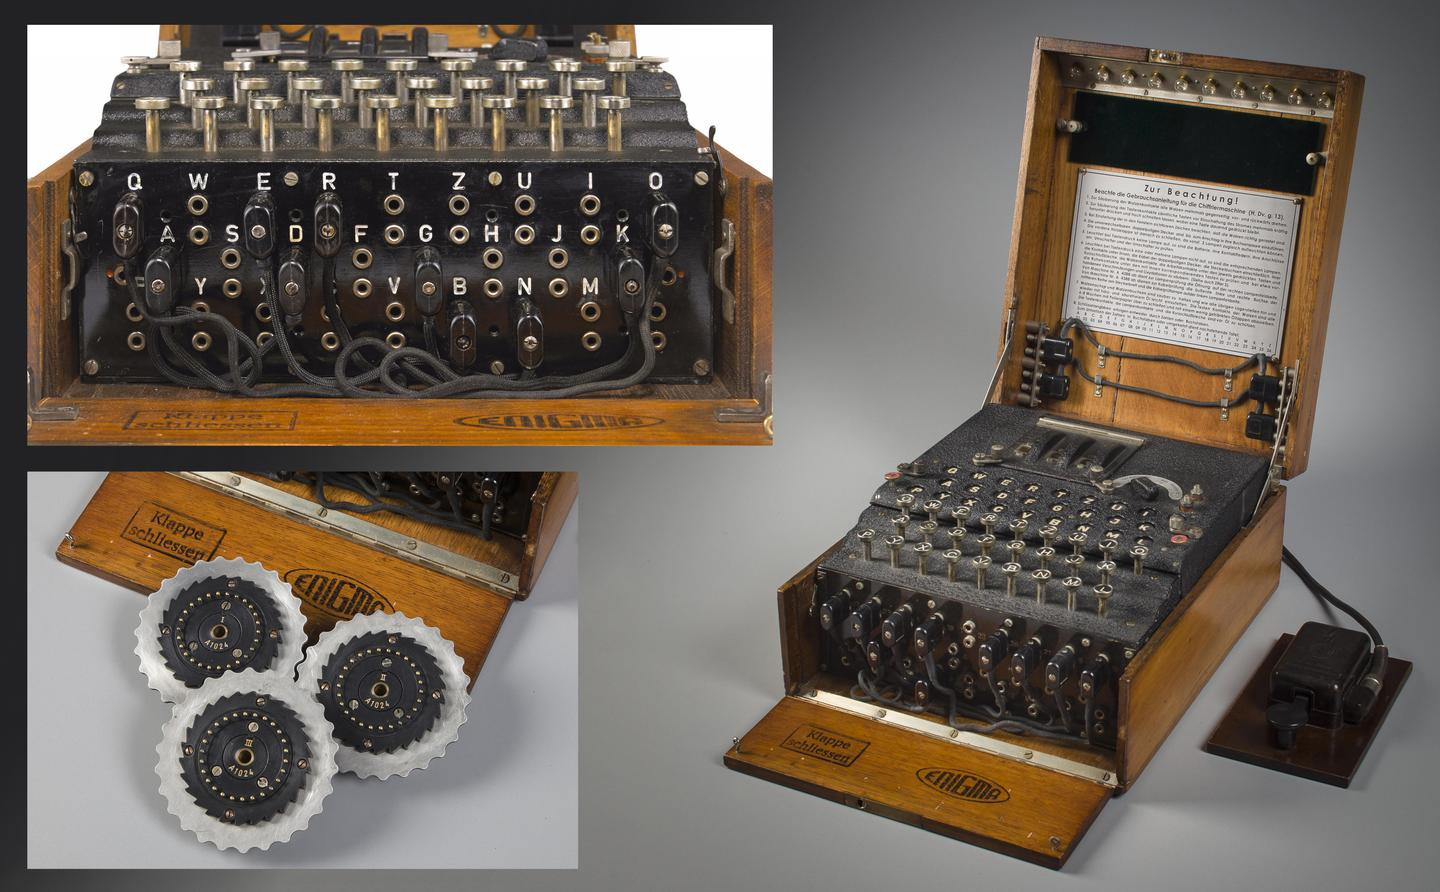 """At Bletchley Park, Turing worked on an electromechanical device designed to facilitate the deciphering of messages created by theGerman Enigma cypher machines. Named the """"bombe"""" in deference to its predecessor, the Bomba Kryptologiczna which was created by the Polish Cipher Bureau, Turing's own device improved on the Polish machine and through its various iterations became one of the premier code breaking weapons in the armory of the Allies, allowing the deciphering of many vital messages sent by Axis powers."""